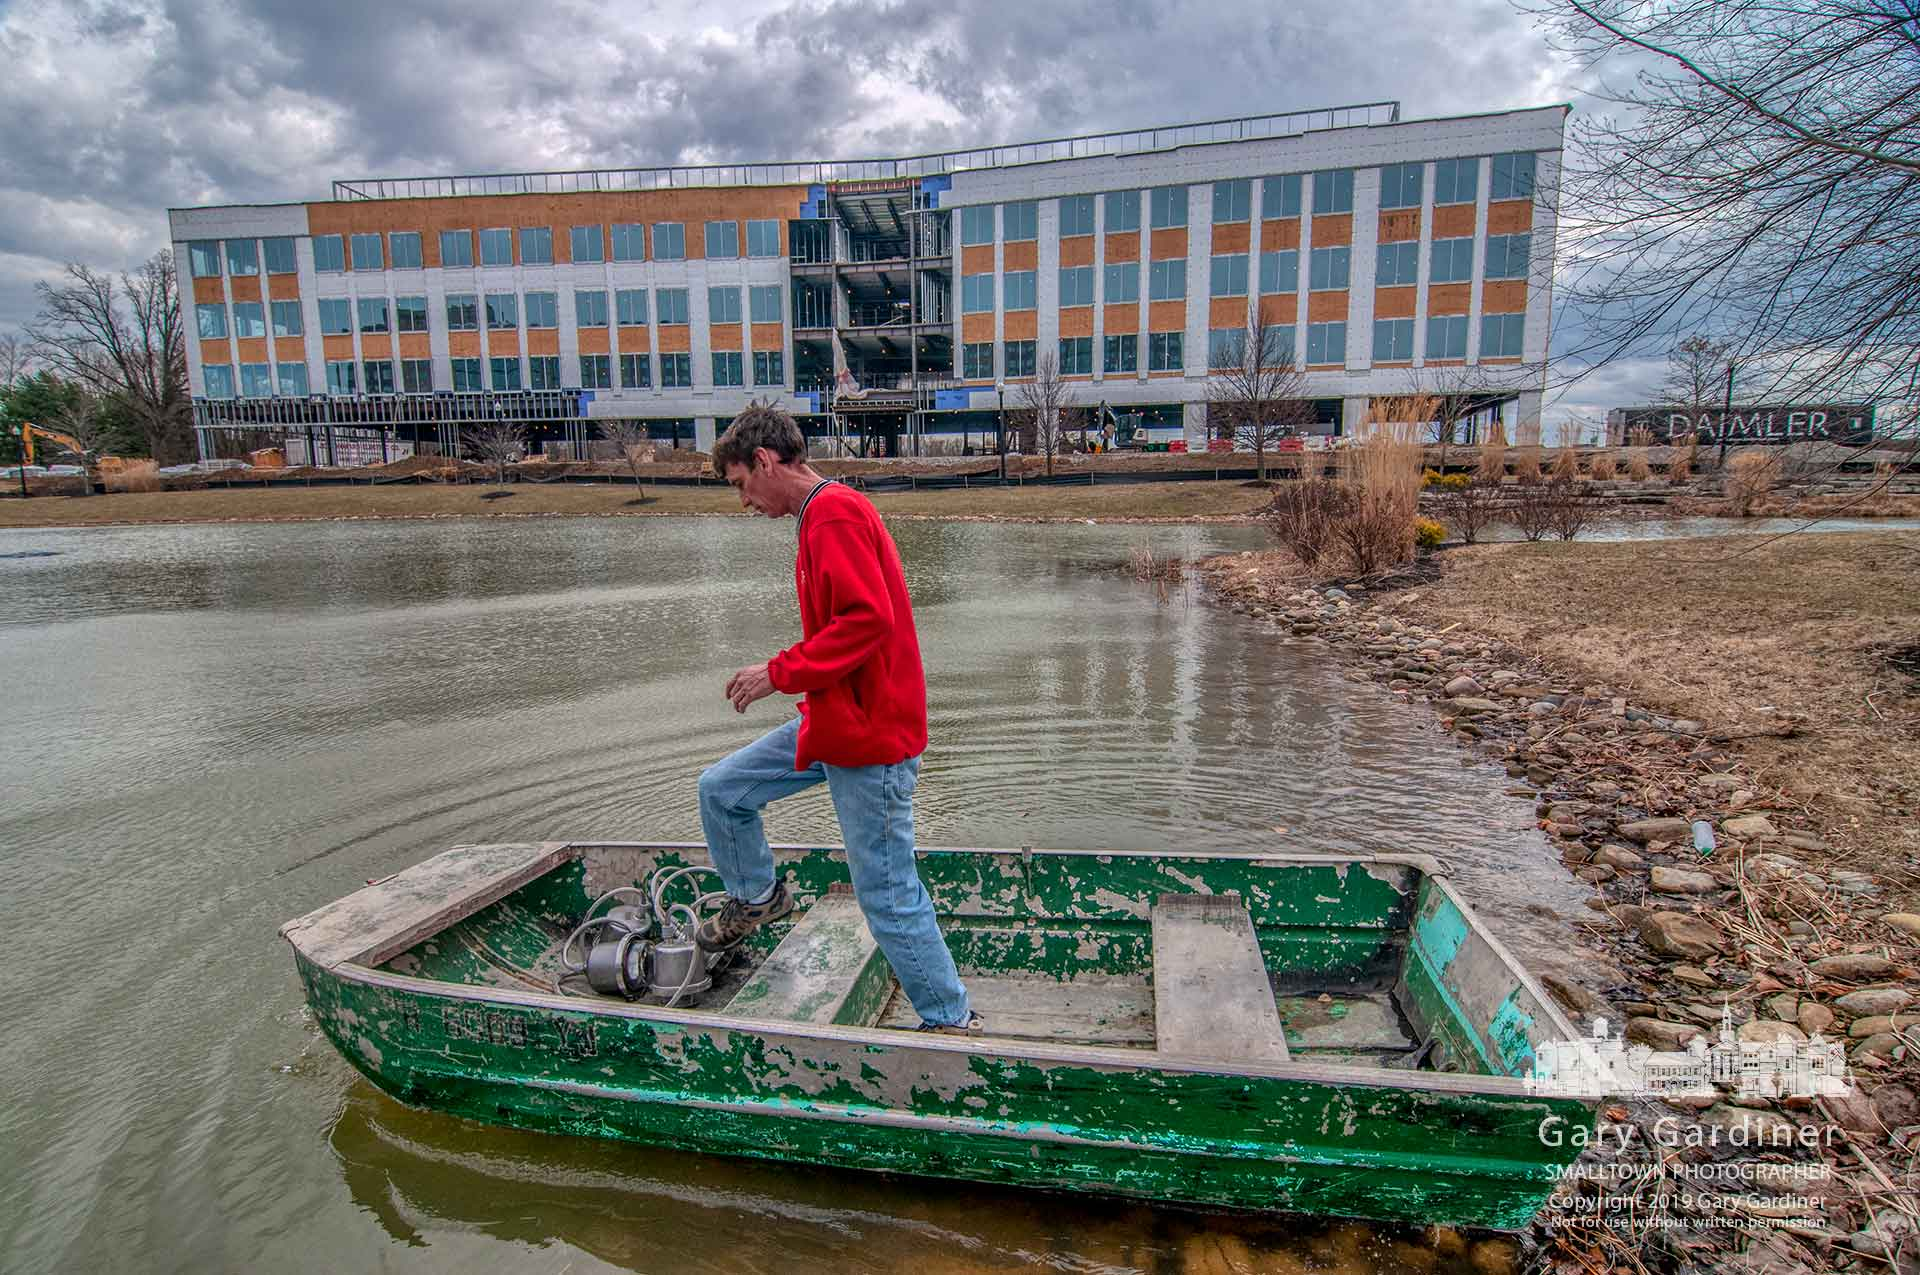 An electrician steps to the bow of his flat-bottom boat where he stores the new LED lights he will install at the fountain in the holding pond between the Renaissance Hotel and the new DHL building under construction at Westar. My Final Photo for March 14, 2019.